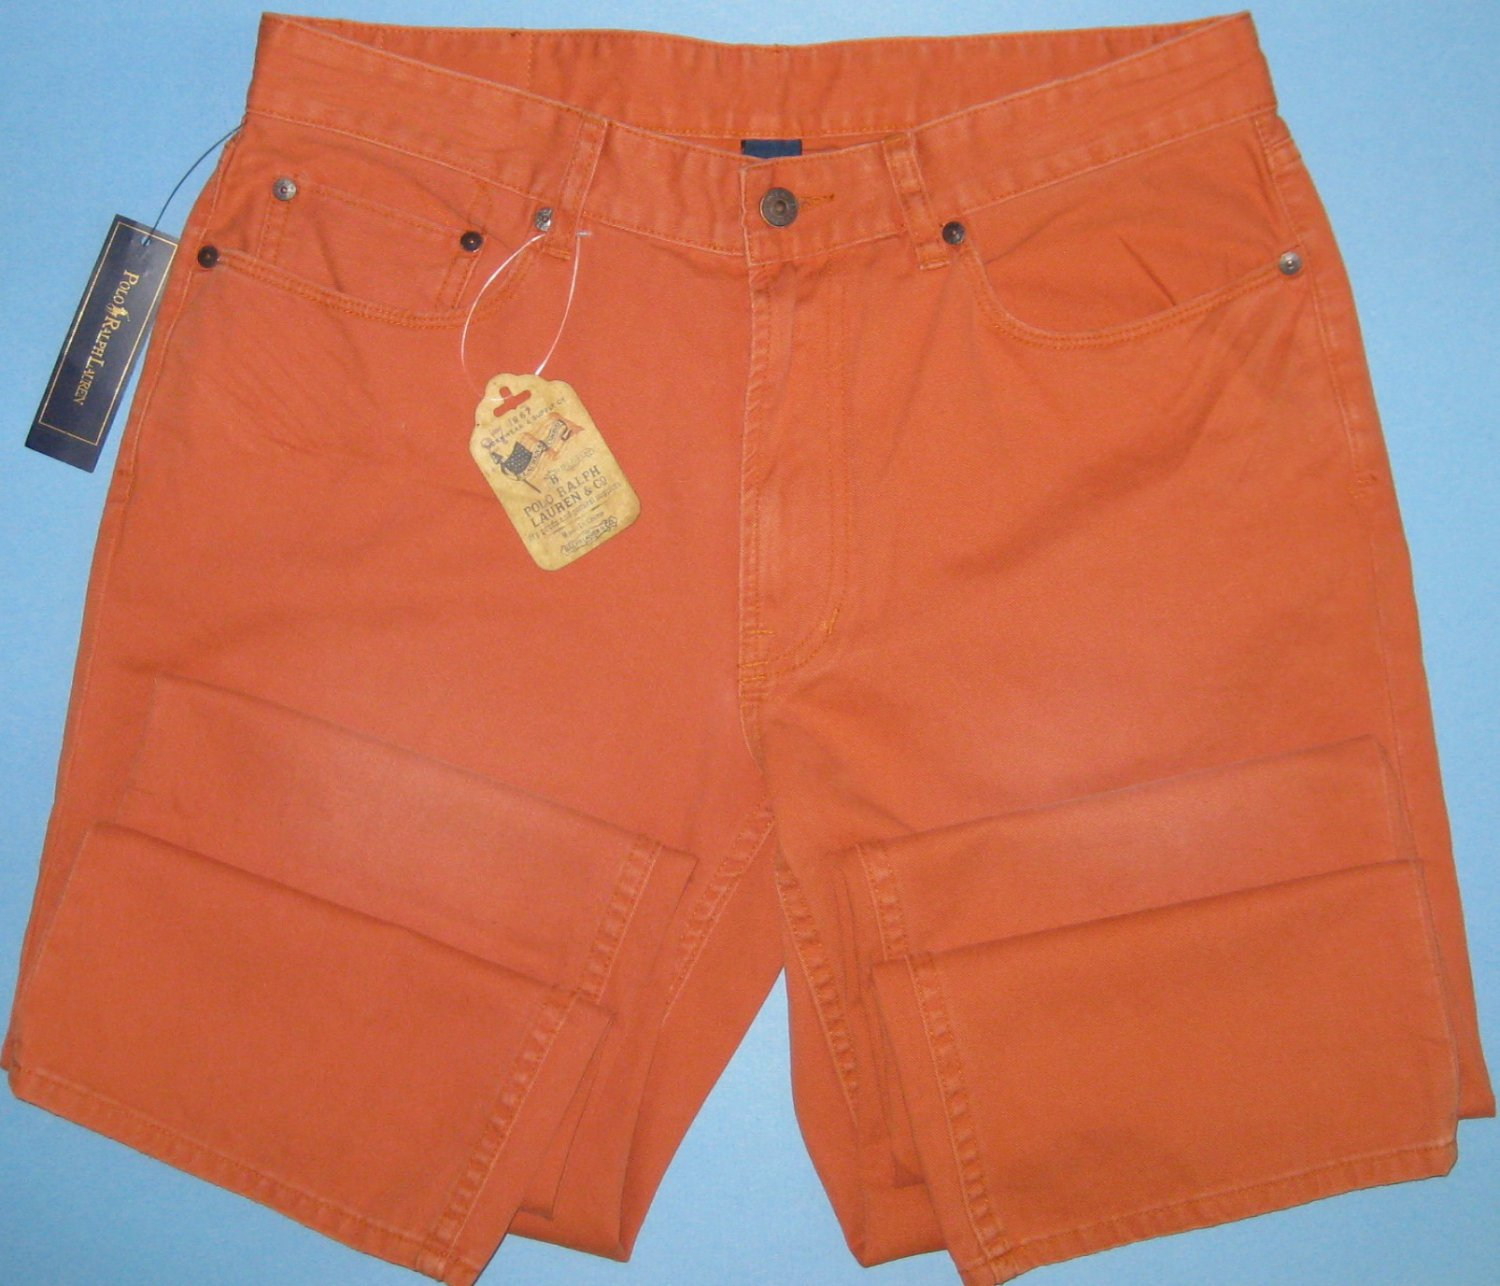 NWT Polo Ralph Lauren Country Straight Leg Pumpkin Distressed Denim Jeans - 33x30